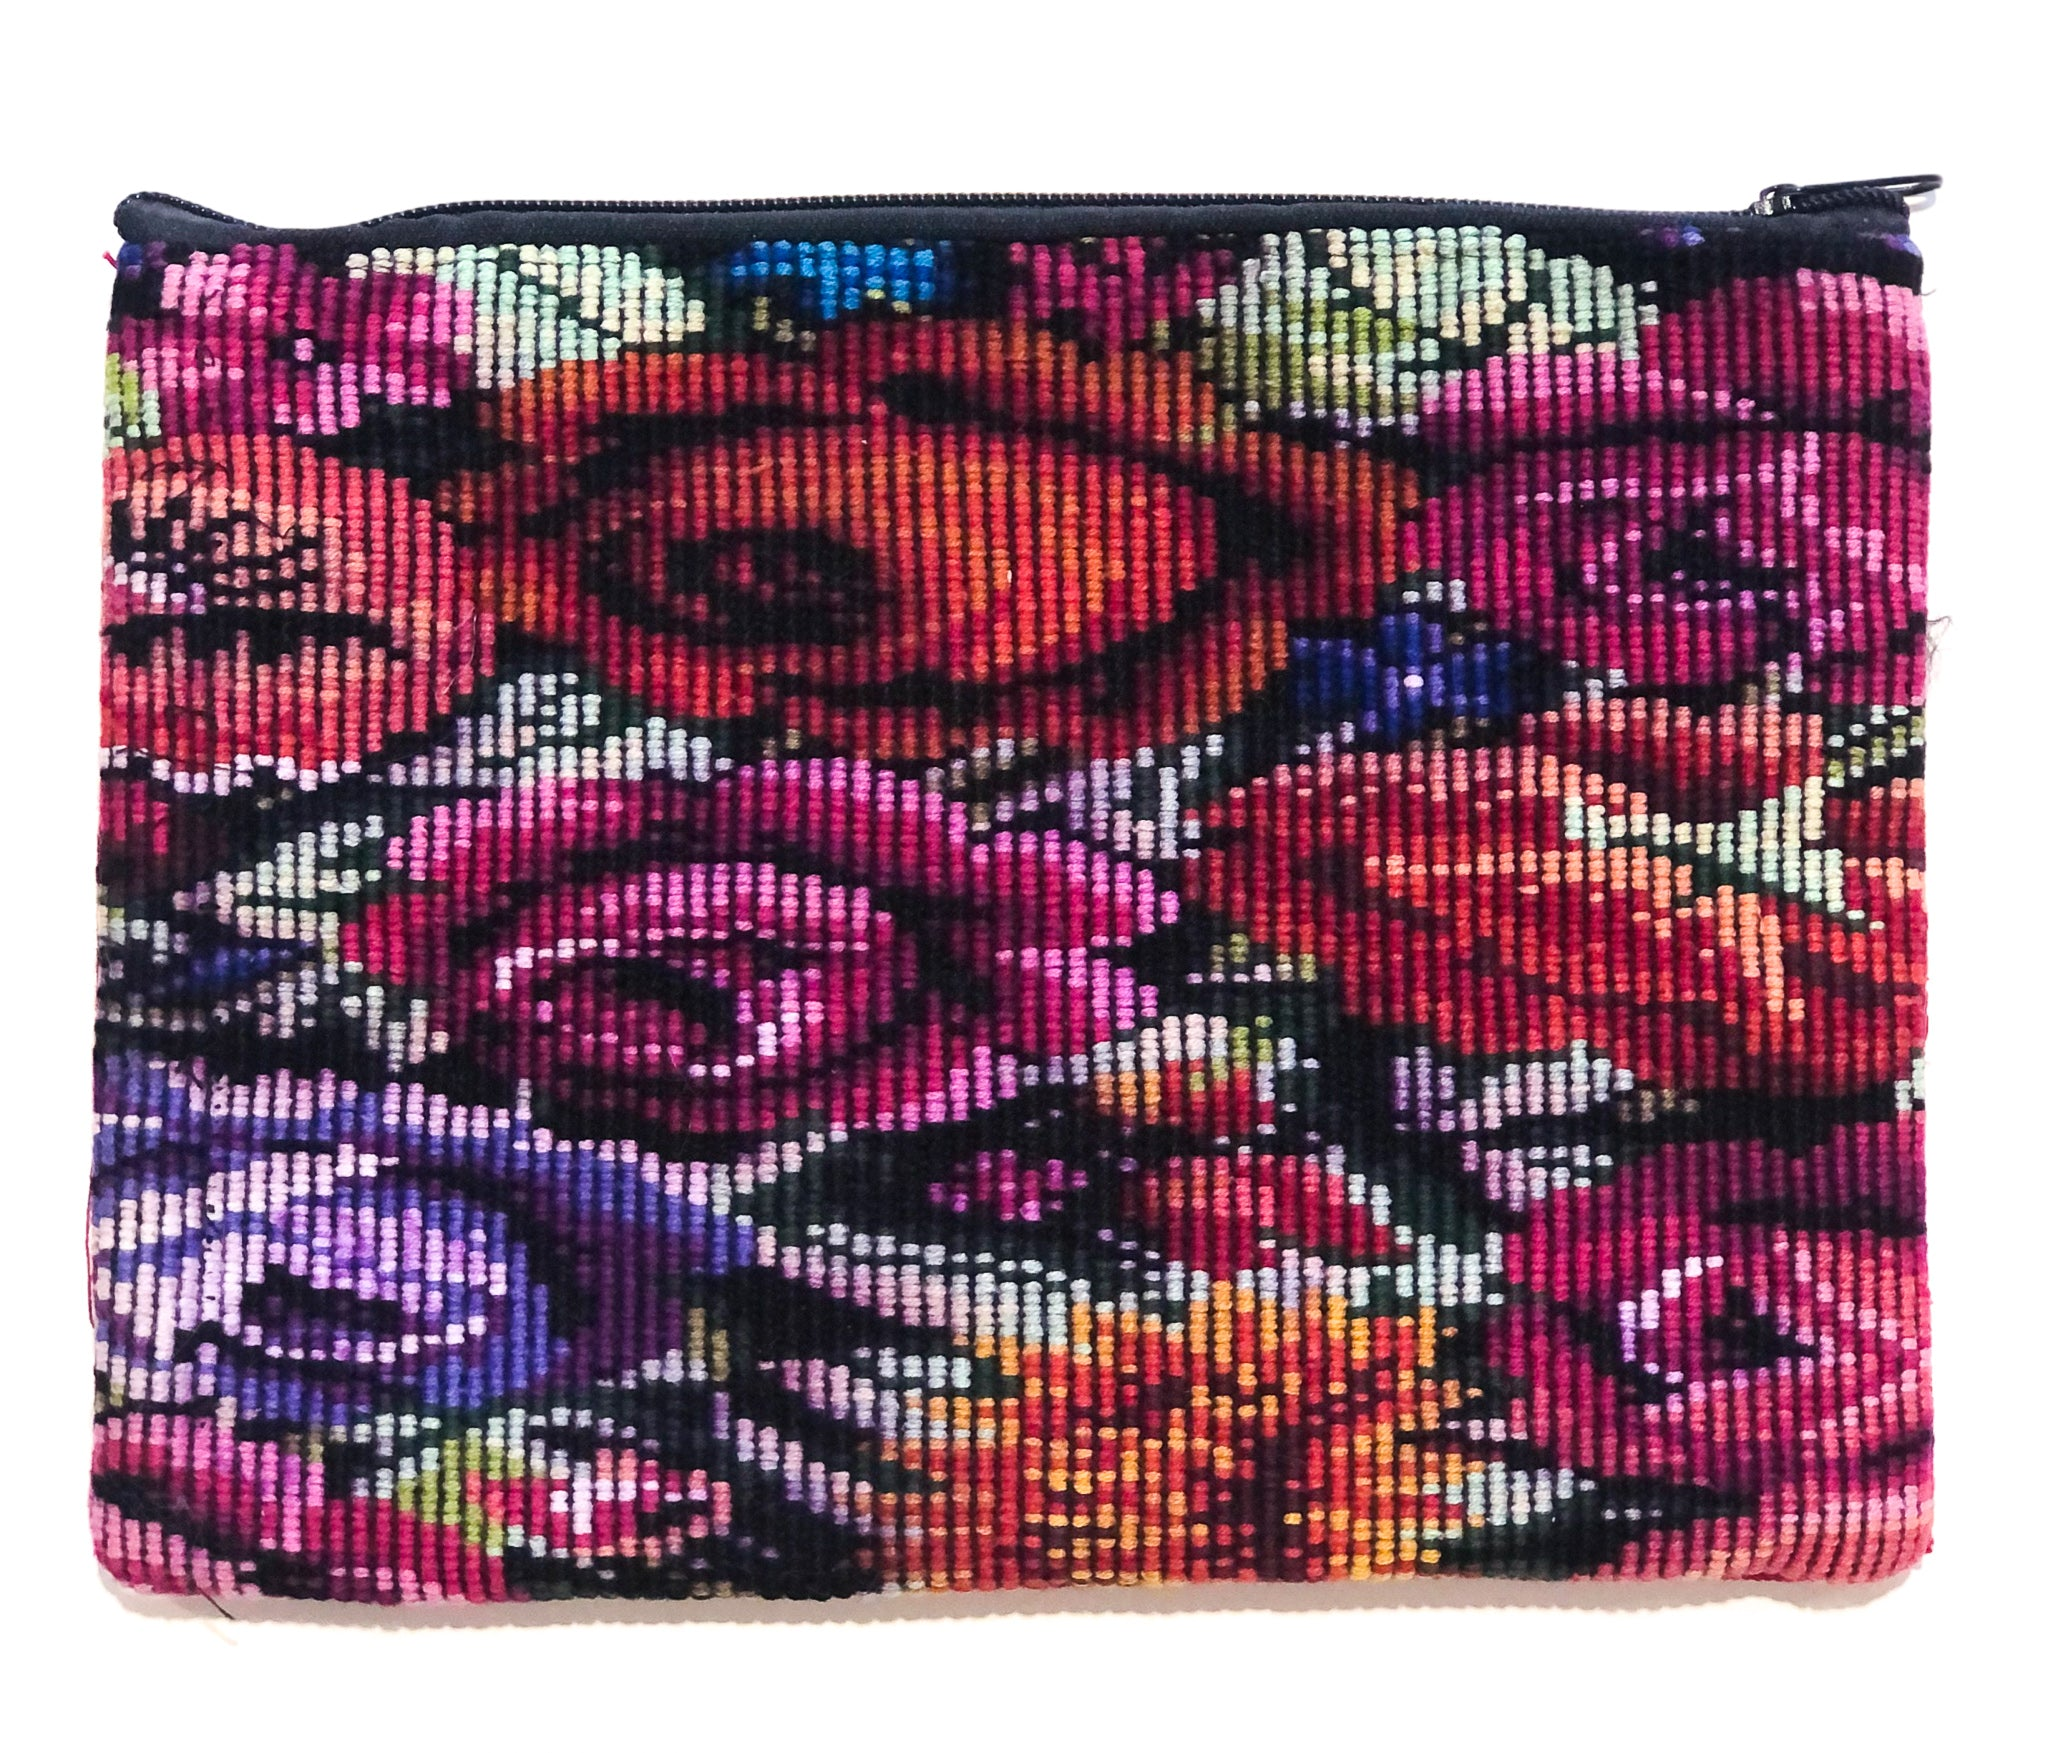 Flor Cosmetic Pouch 001